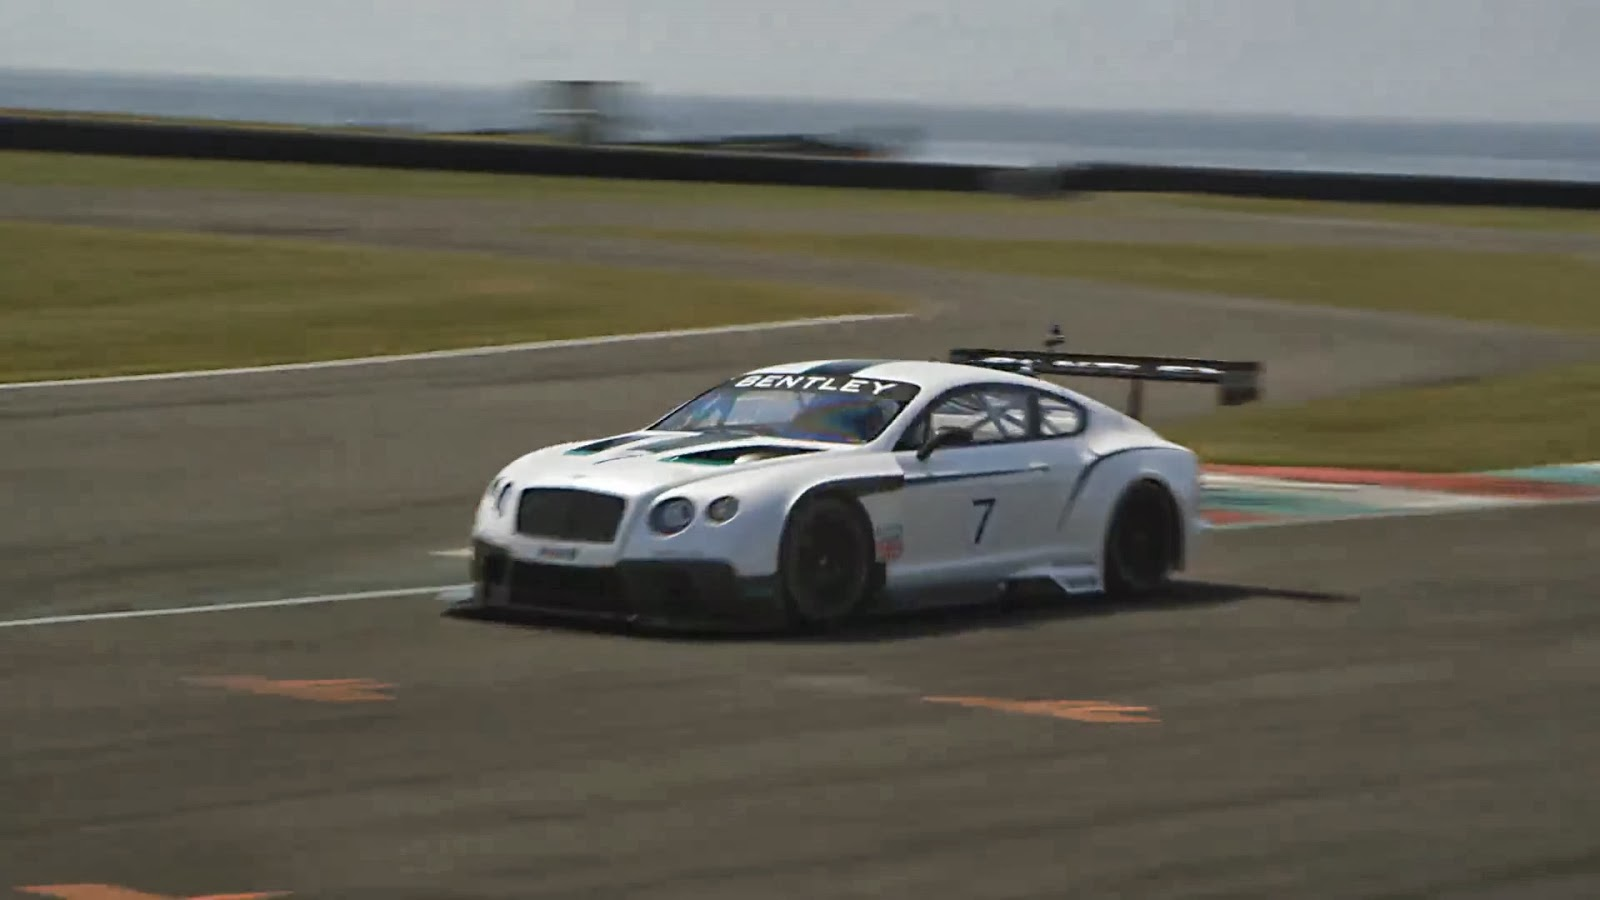 2019 Bentley Continental GT3 Racecar photo - 1